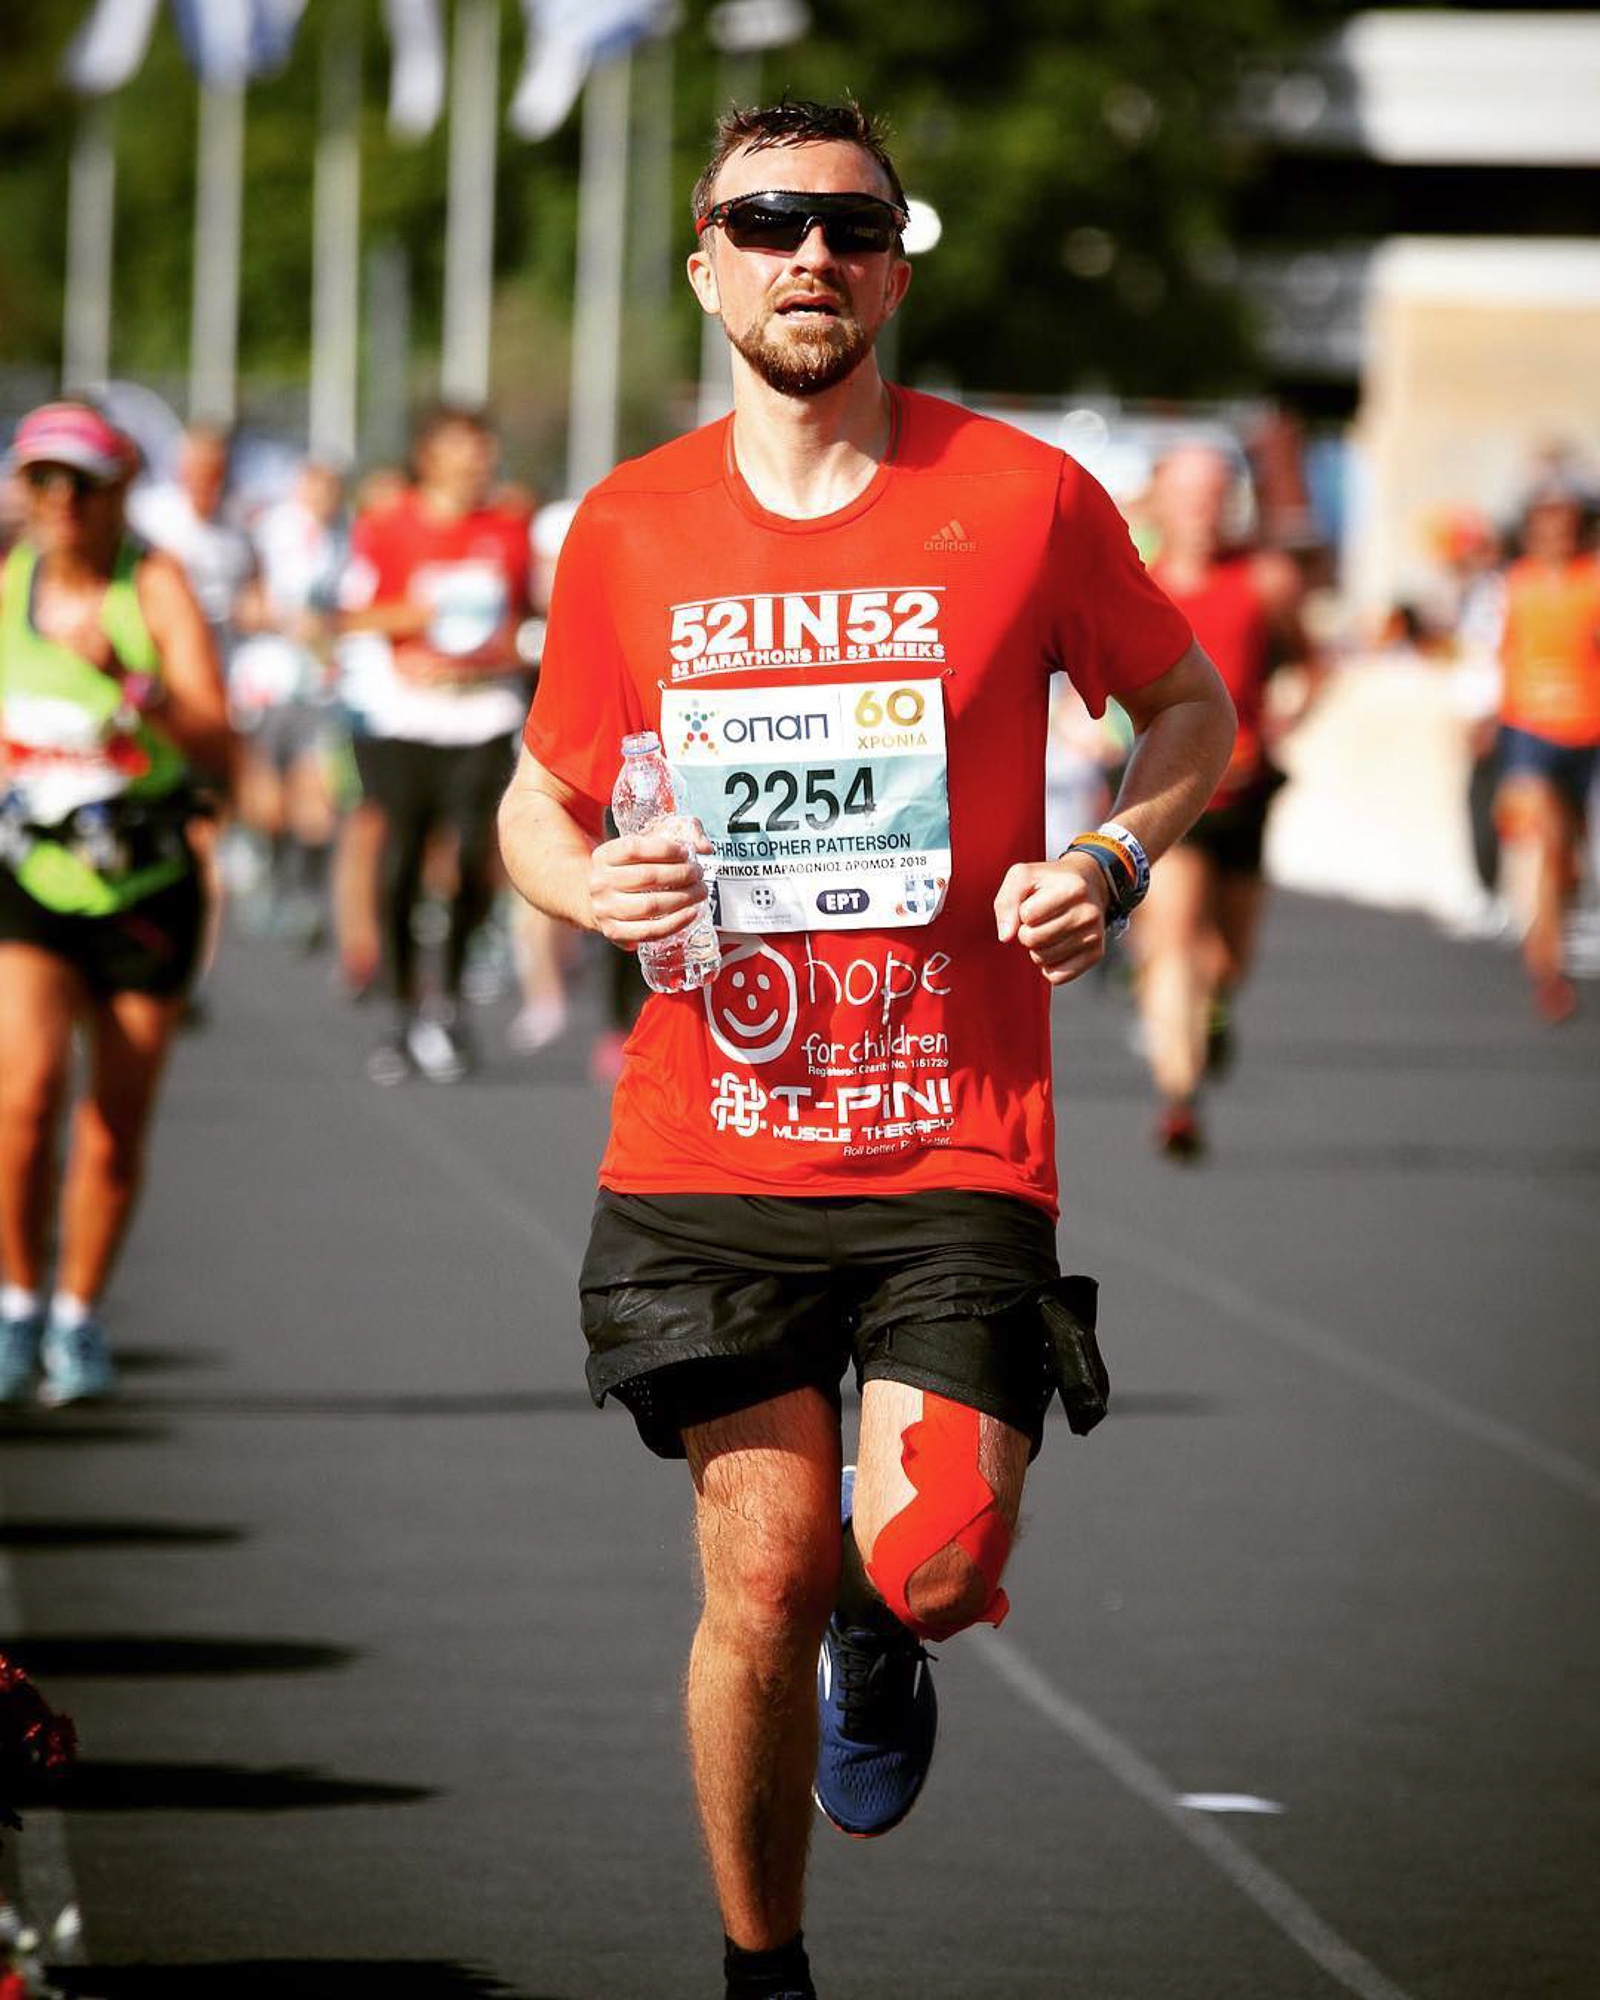 Marathon number 37 out of 52 , the Athens marathon. Running a marathon in Athens is as authentic as it gets!